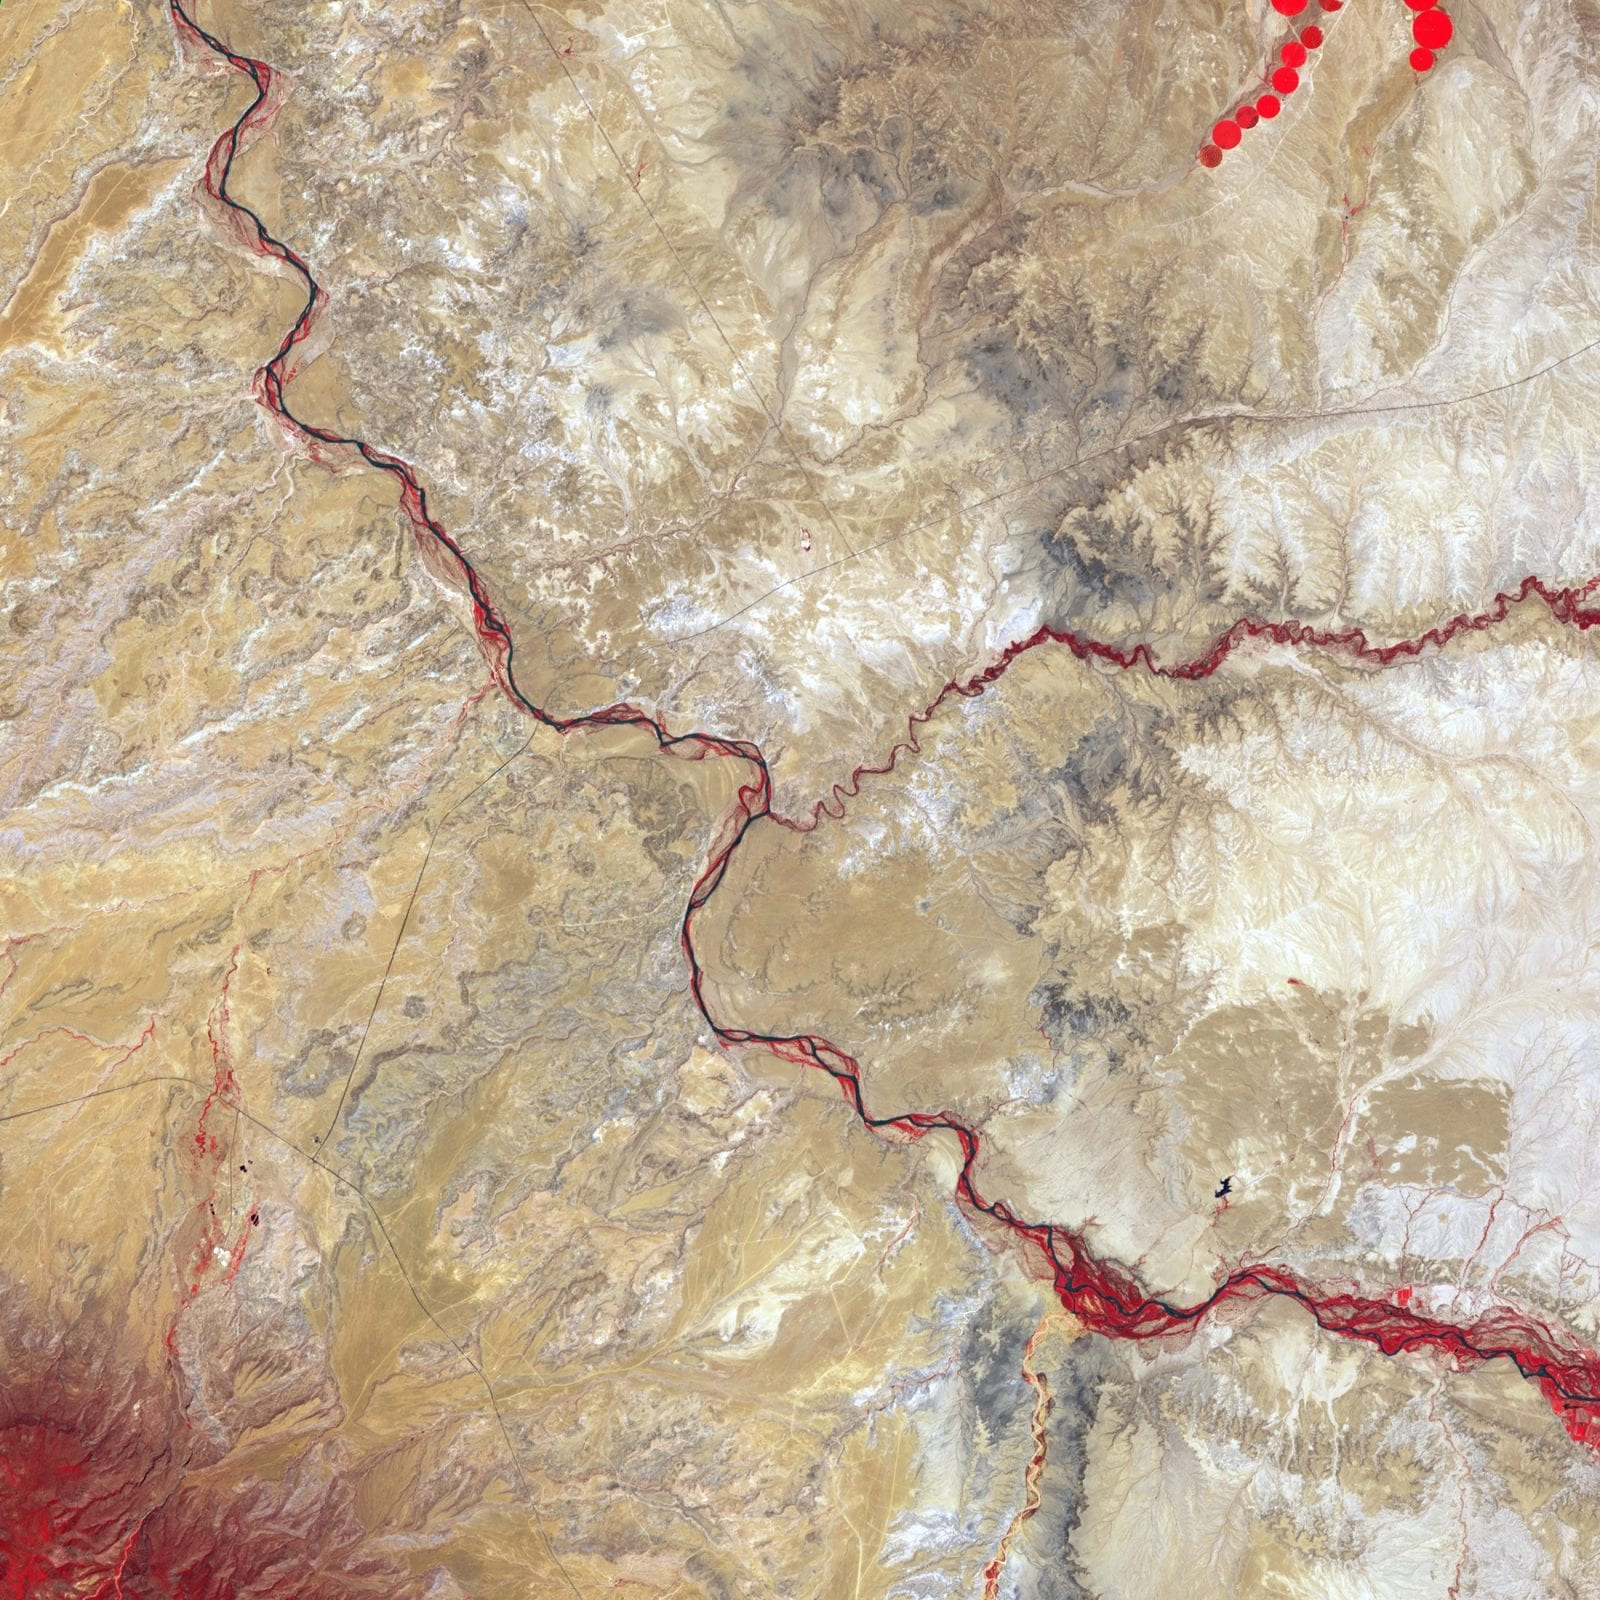 Image of the mancos river from a satellite